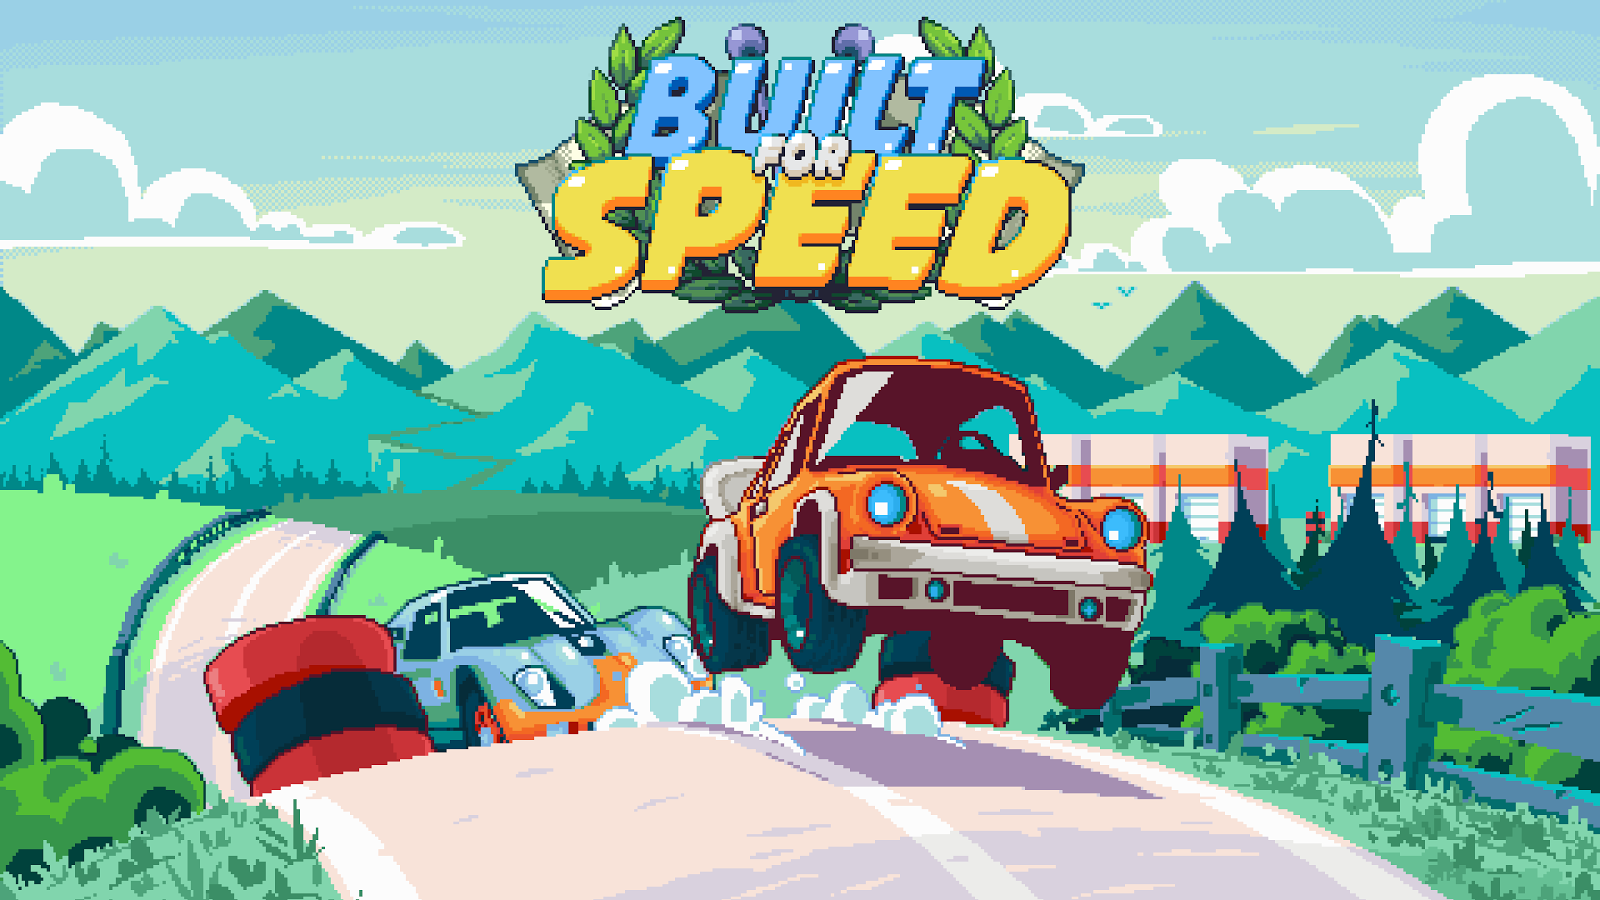 Built for Speed Screenshot 4